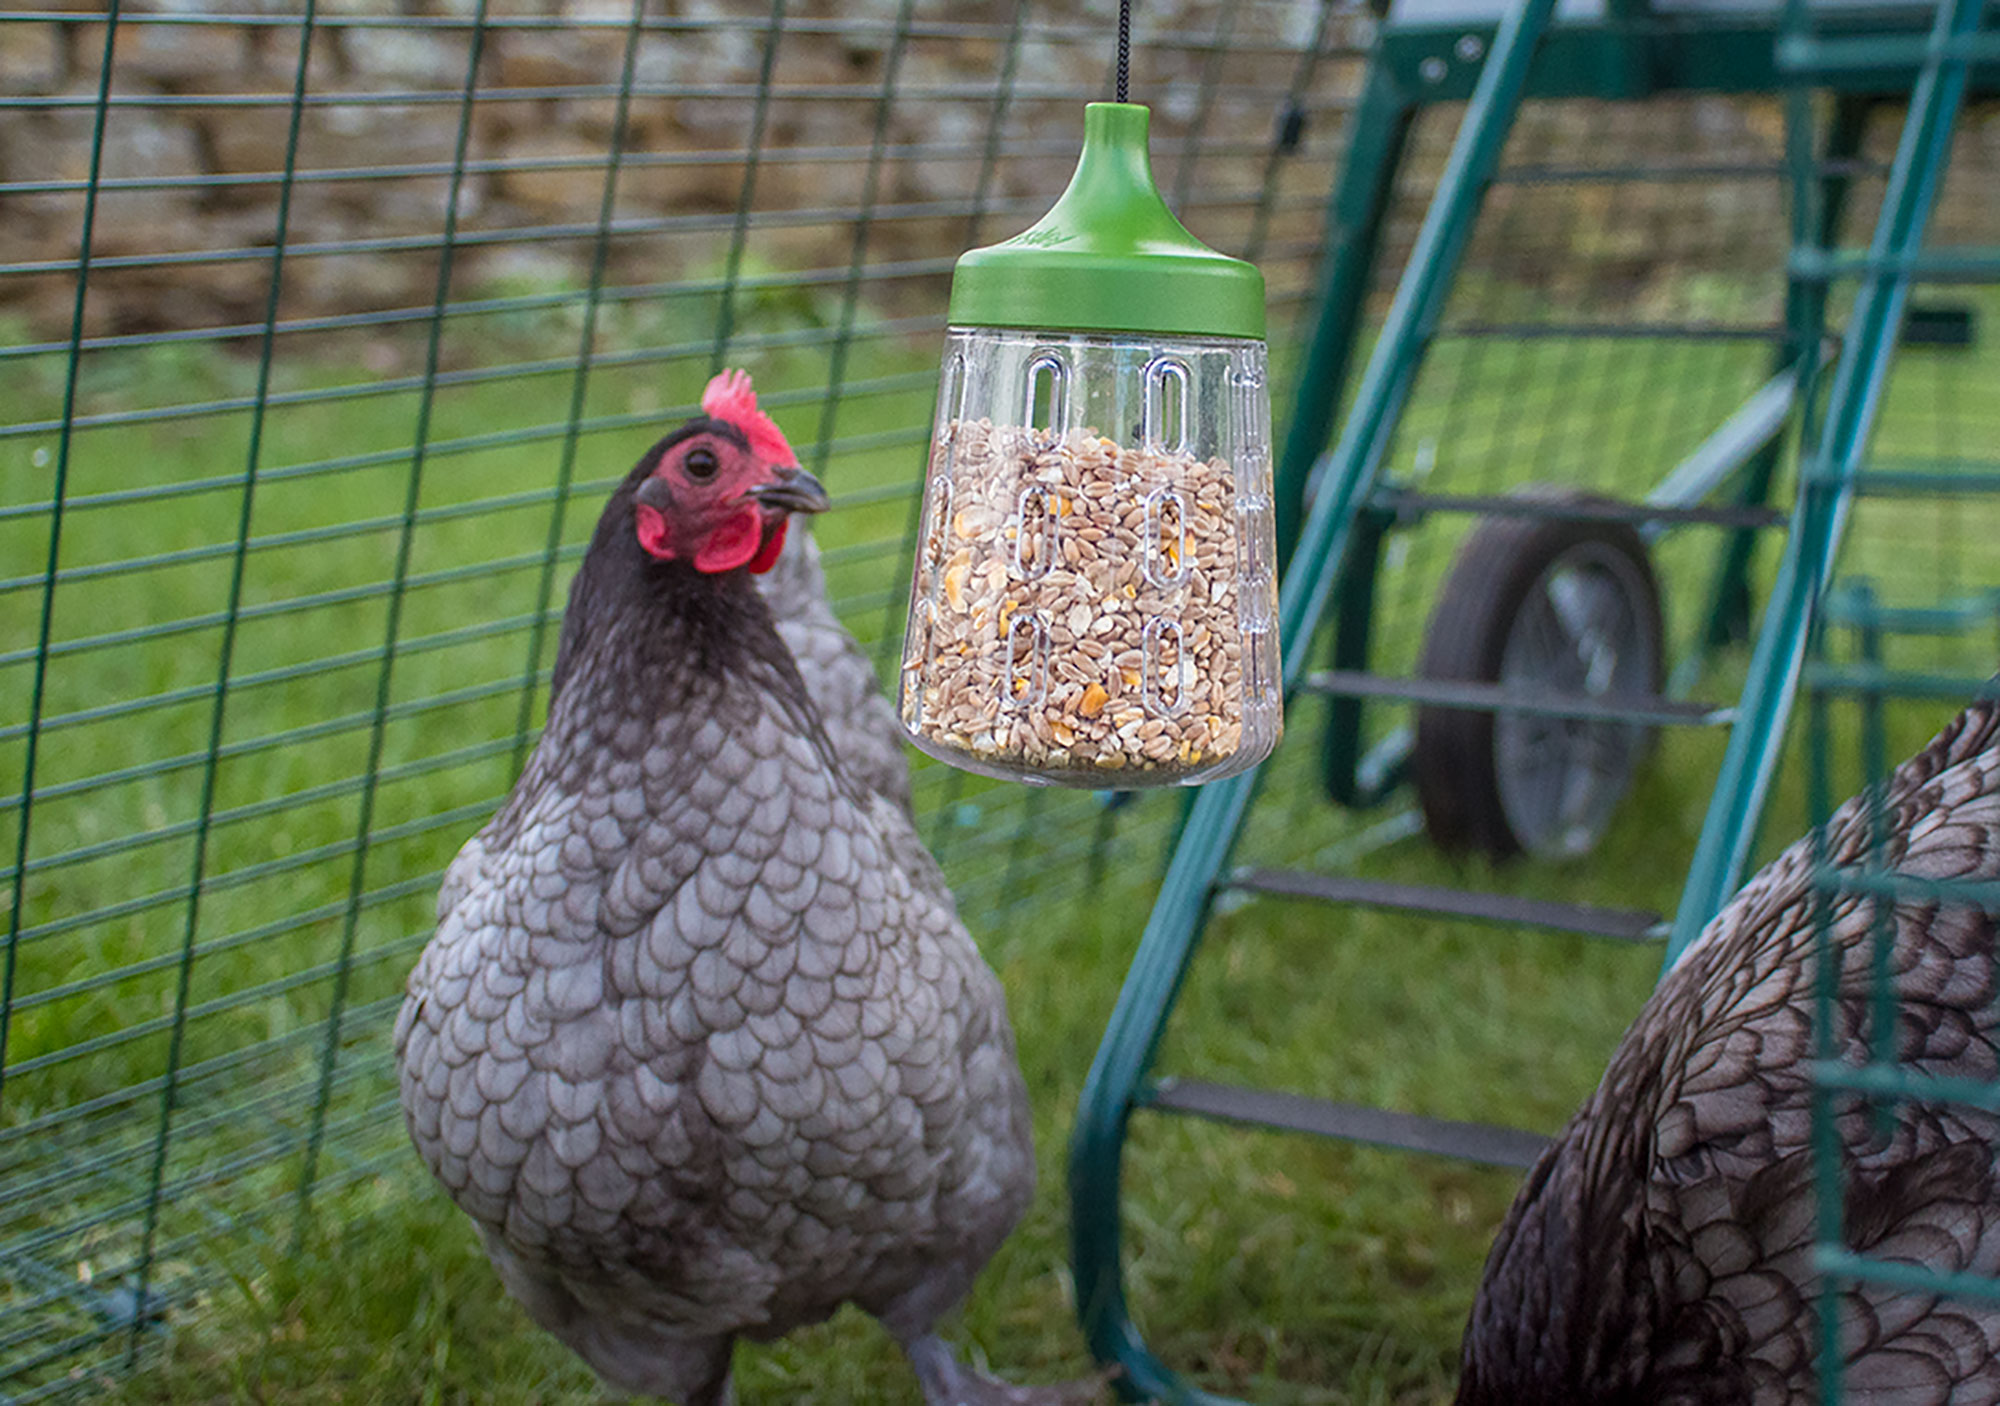 The Peck Toy makes your chicken treats last longer